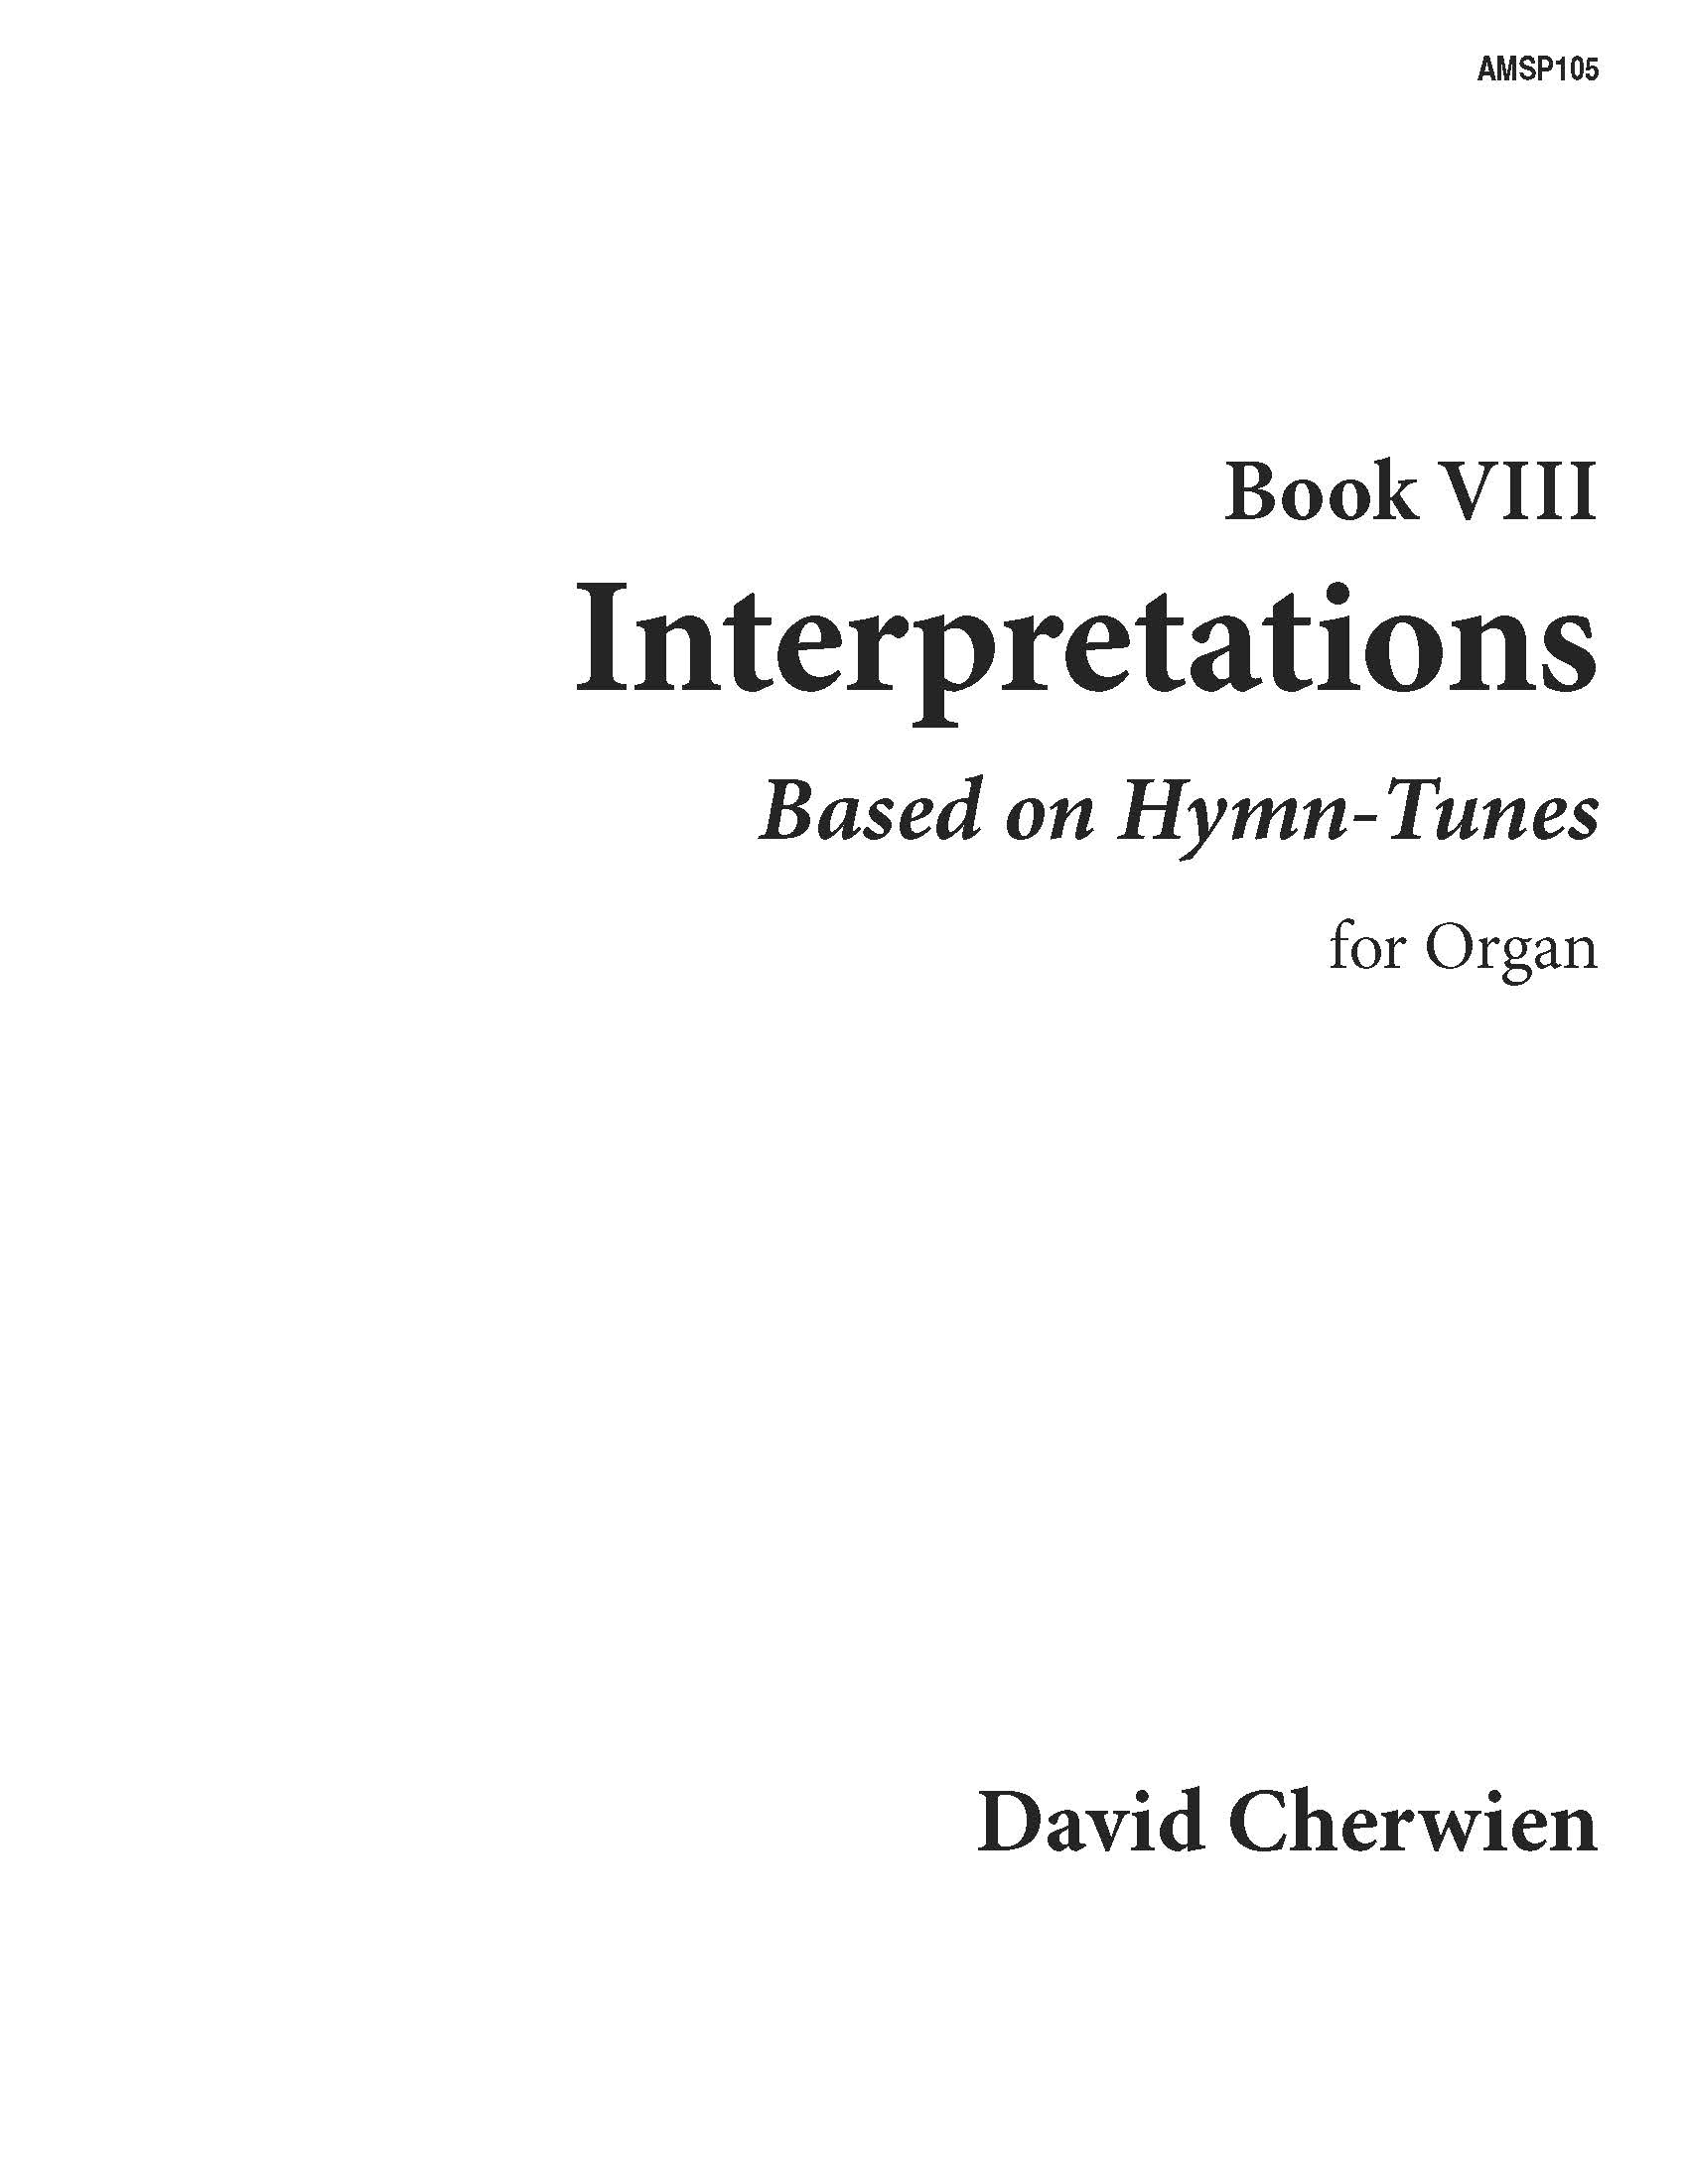 Interpretations, Book VIII